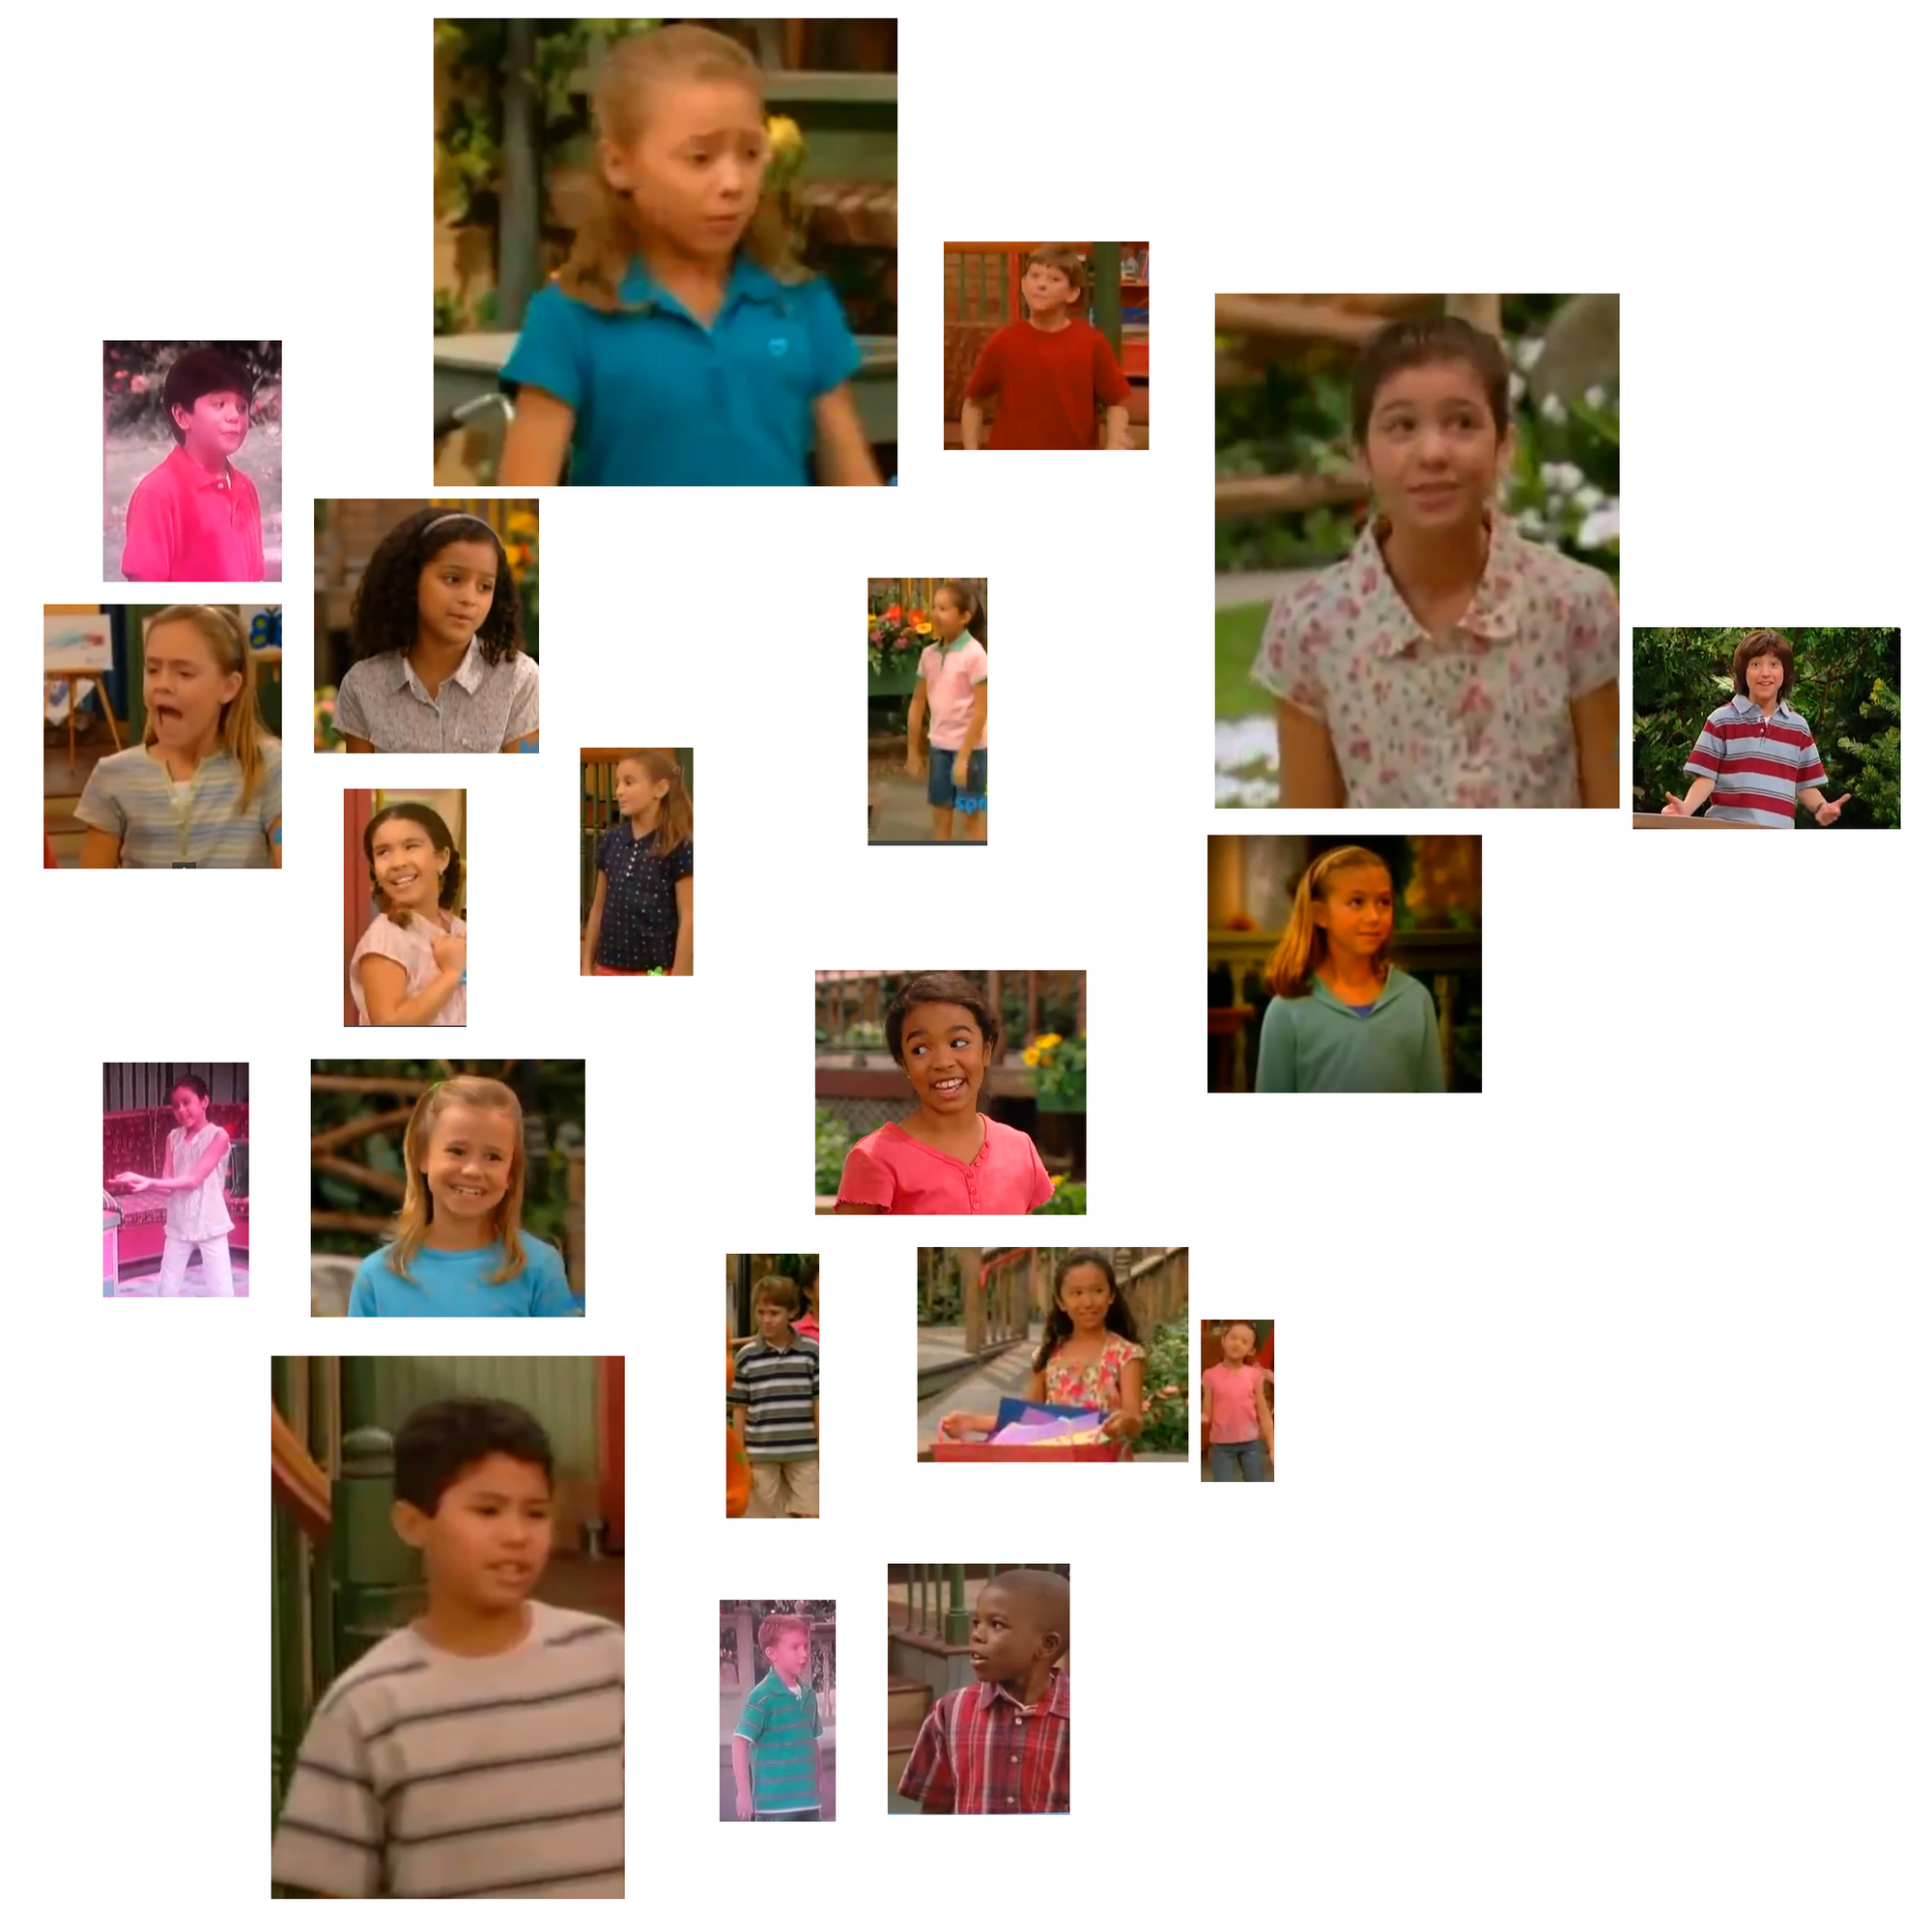 Barney And The Backyard Gang A Day At The Beach: Season 11 Cast Members Of Barney & Friends.png